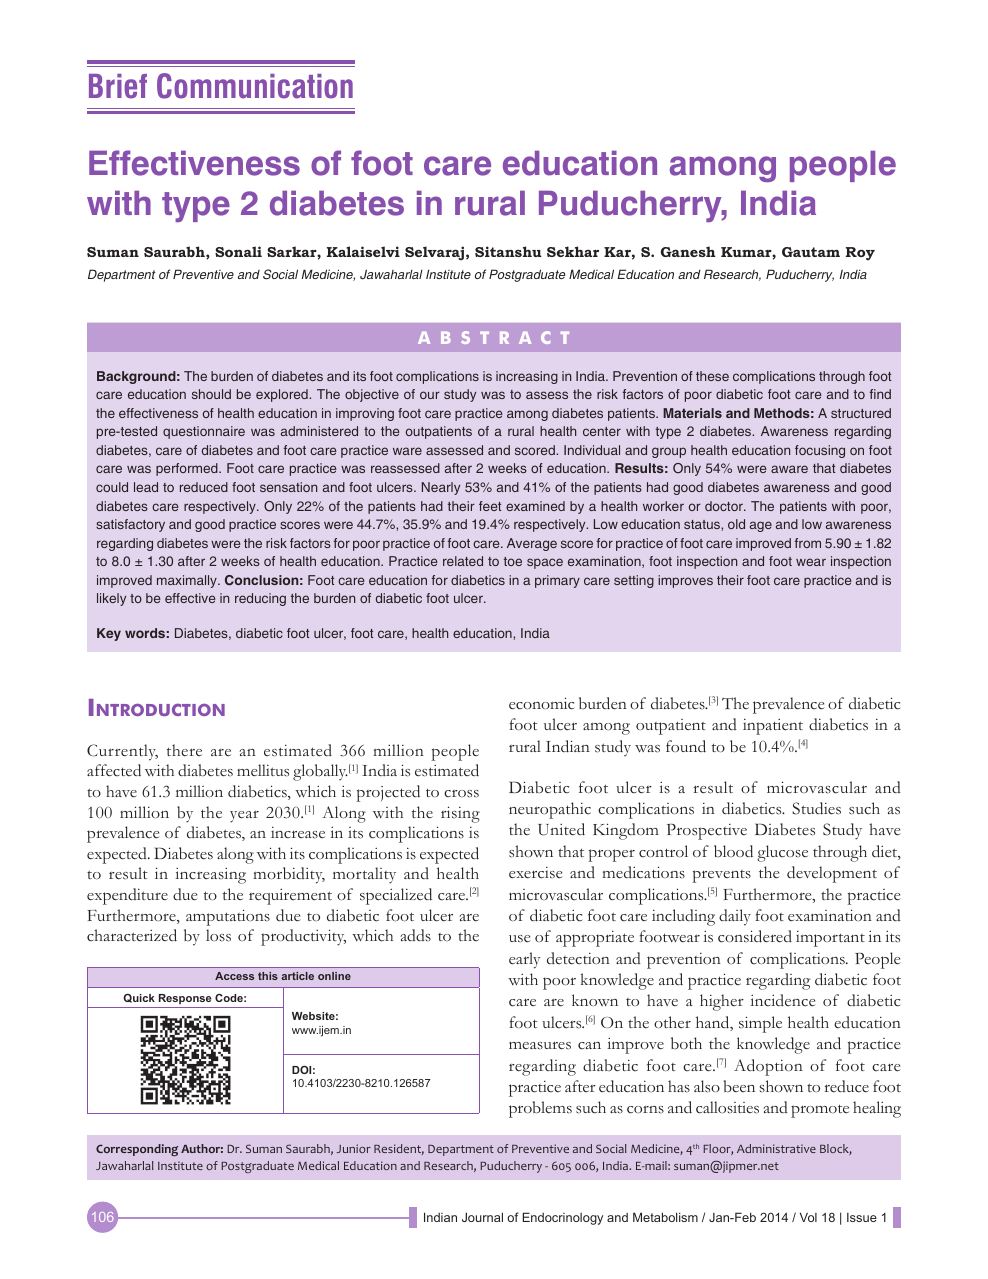 Effectiveness of foot care education among people with type 2